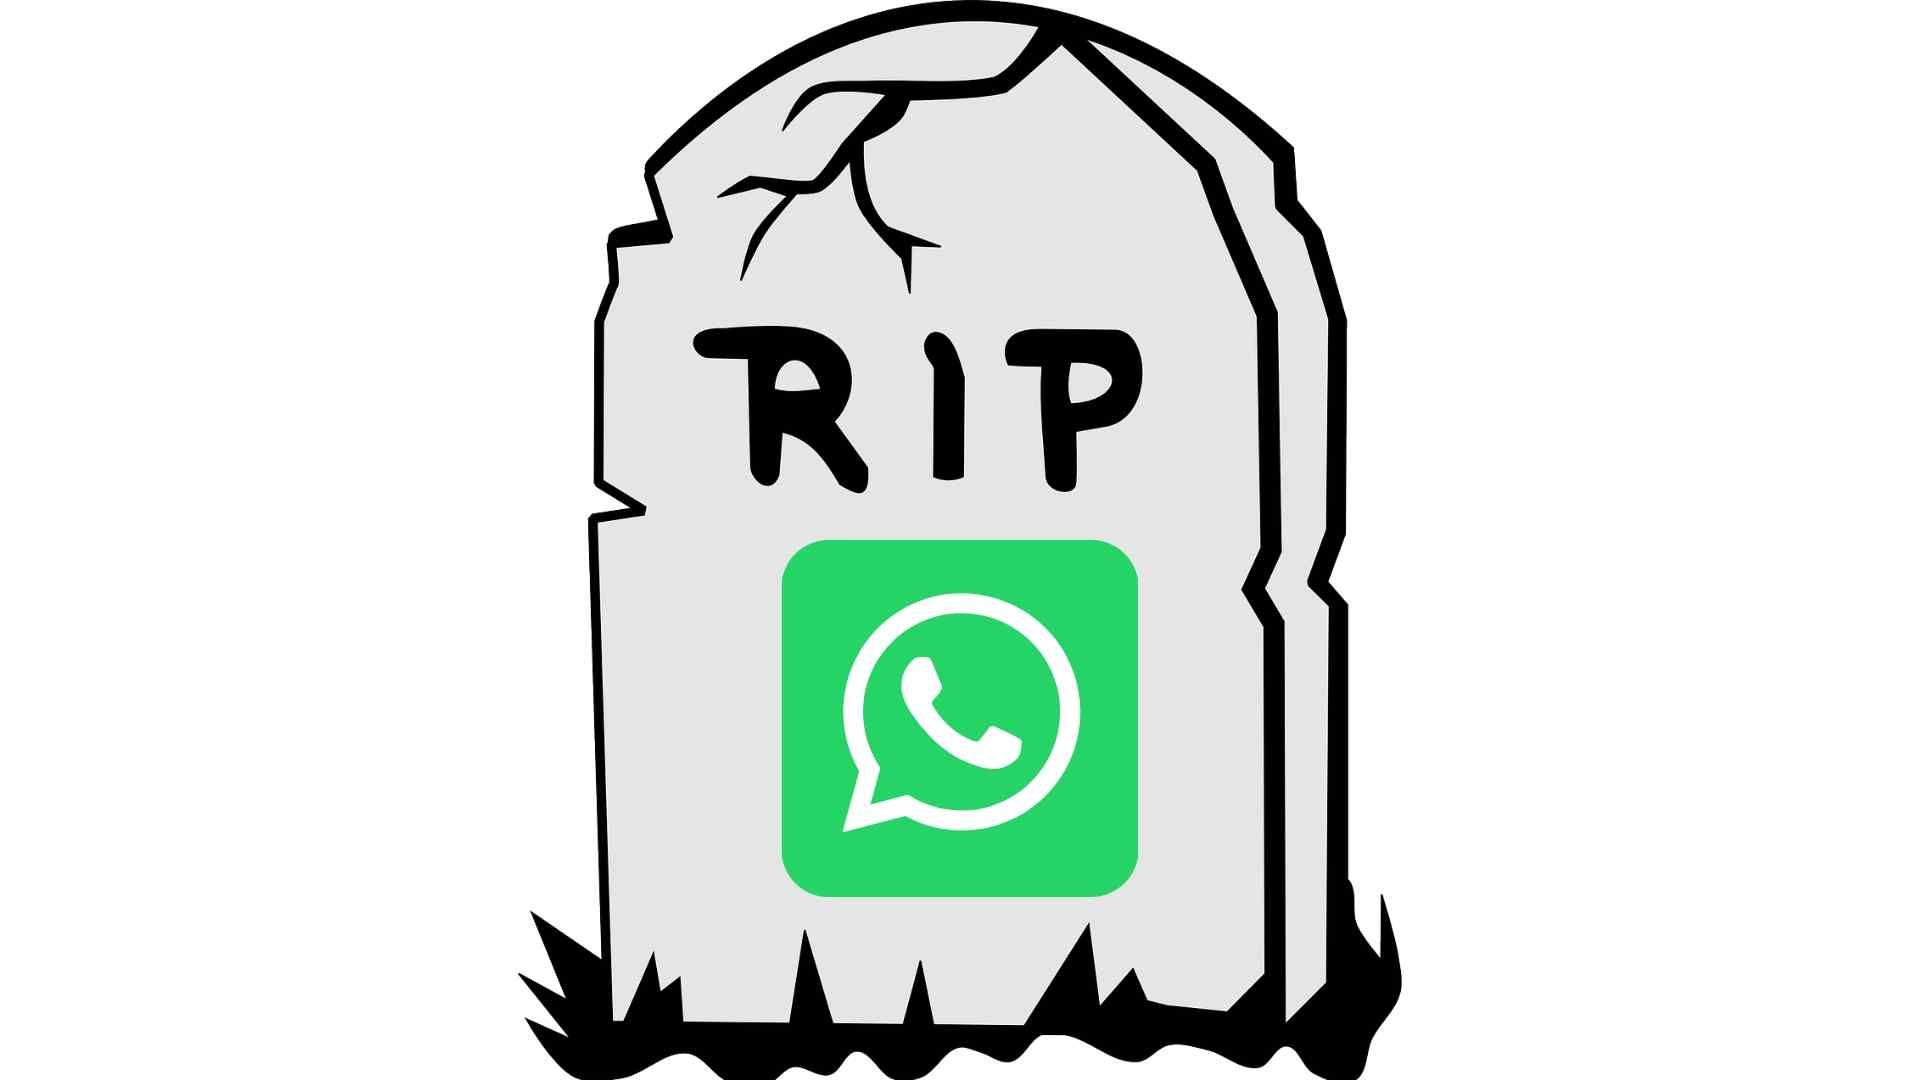 WhatsApp won't work after December 31 on older phones